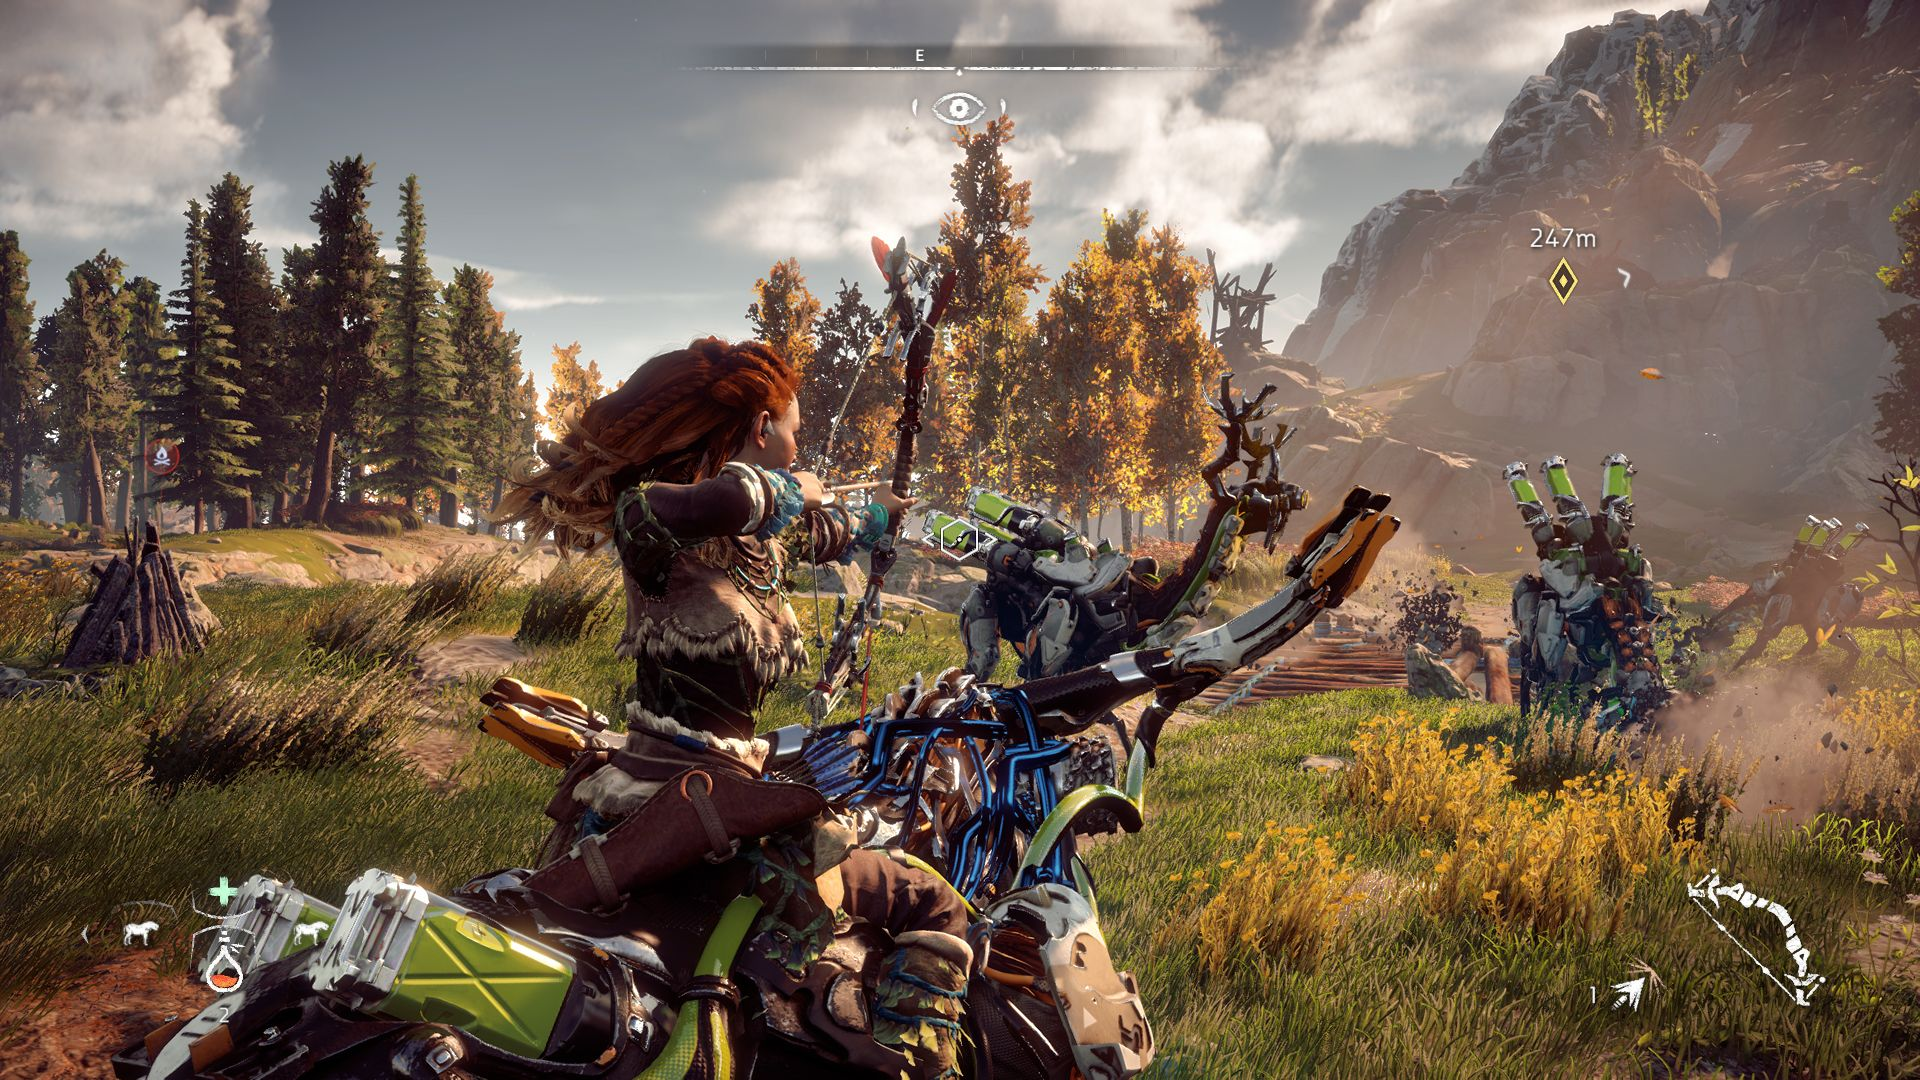 Upgrading the amount of storage Aloy has in Horizon: Zero Dawn is a no-brainer.